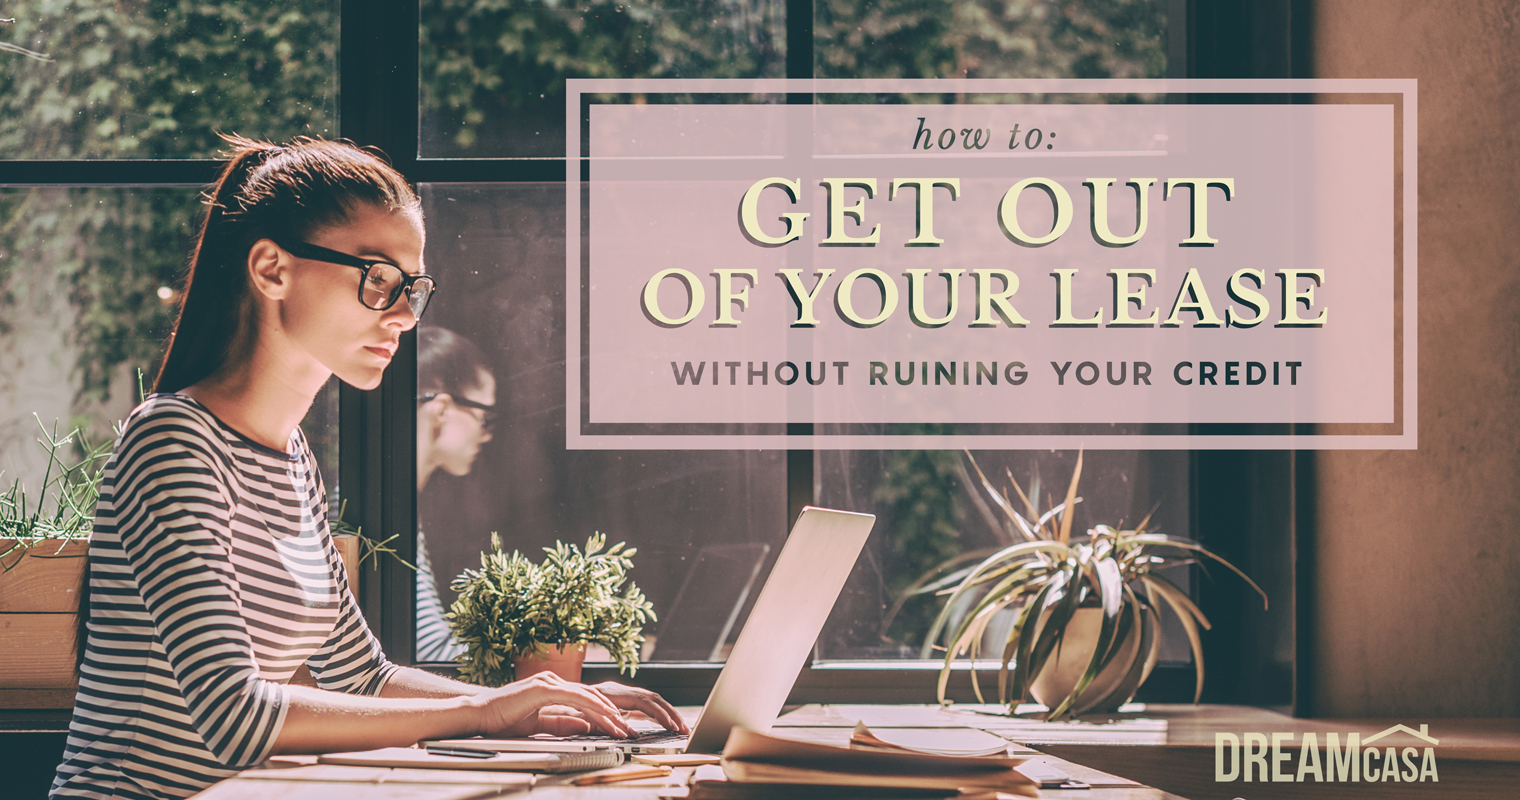 How To Get Out Of Your Lease Without Ruining Your Credit